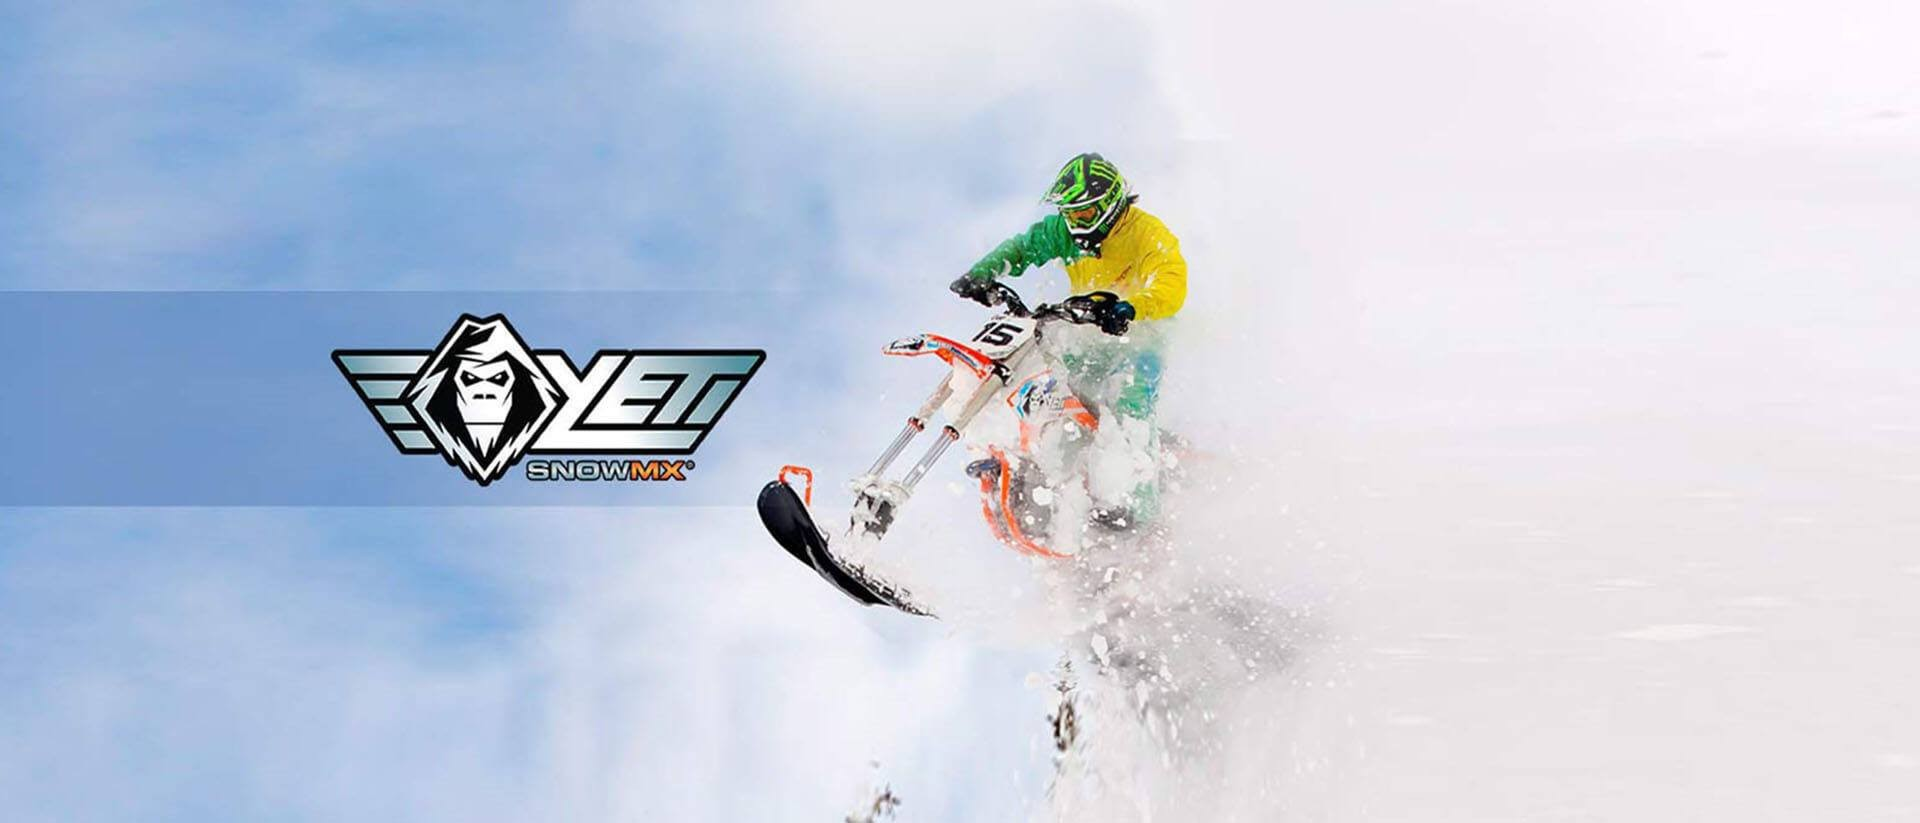 Shop Yeti Snow MX - Available at Carson Motorsports in Carson City, NV